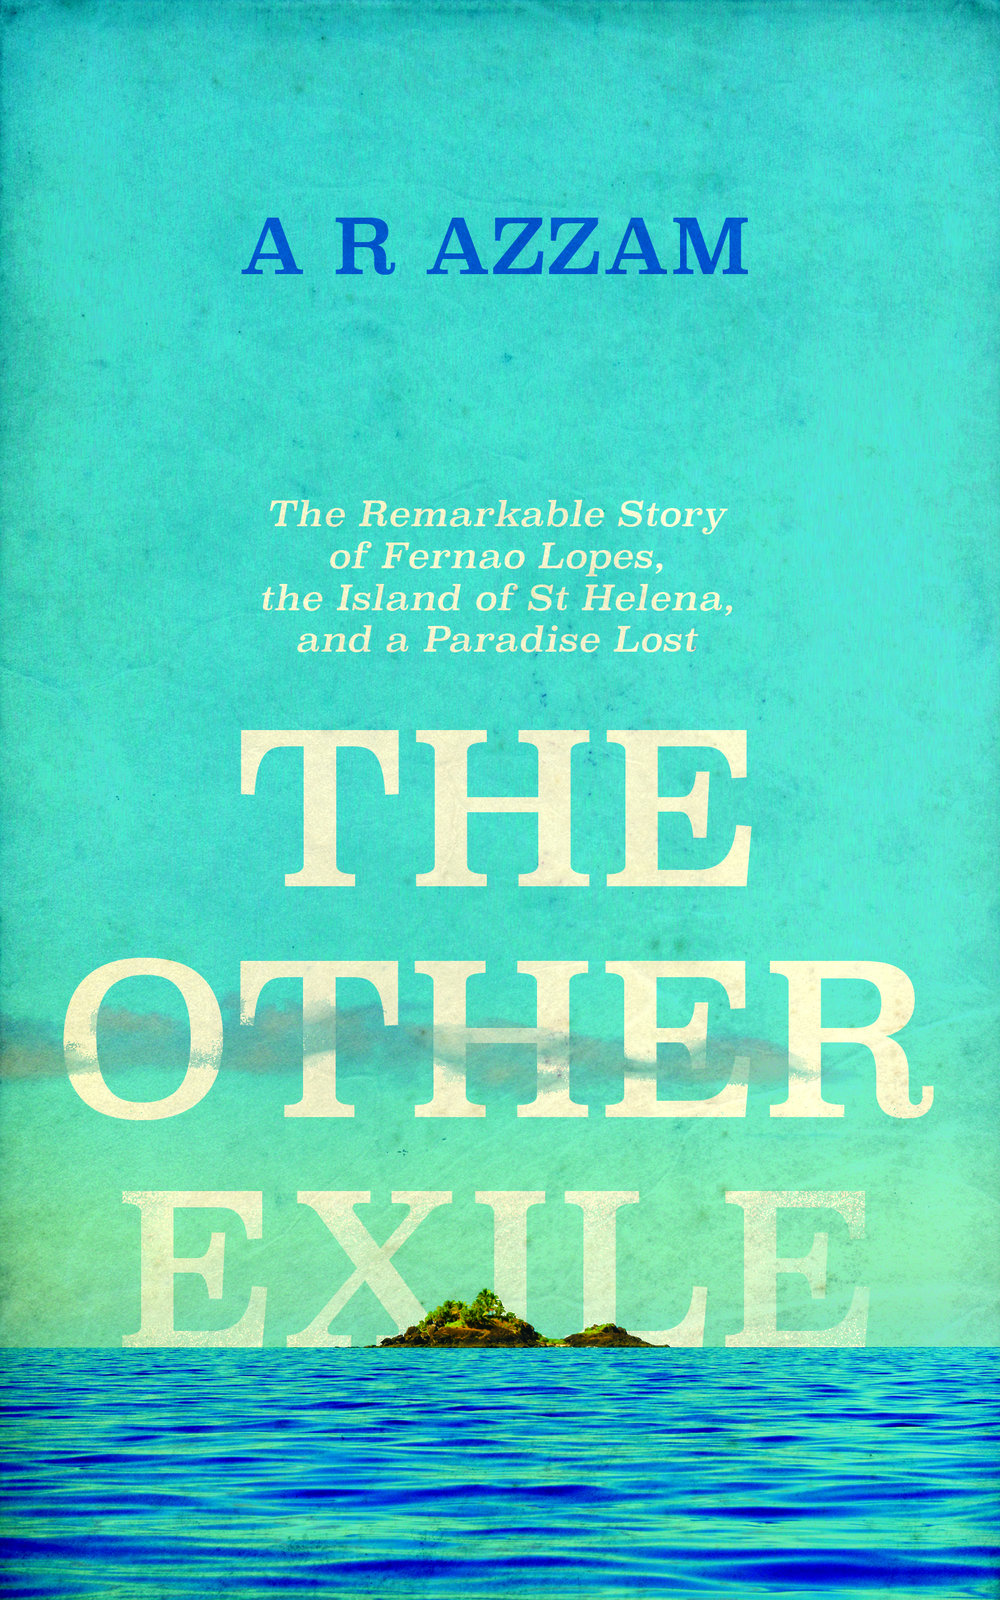 THE OTHER EXILE  Biography, 320 pages Icon, May 2017  Based on brand new research by A R Azzam, author of the acclaimed  Saladin  (Longman, 2007),  The   Other Exile  is at once a historical adventure story and a meditation on solitude. It is a story about redemption in one of the darkest periods in Europe and the tale of the haunting relationship between man and wild nature.